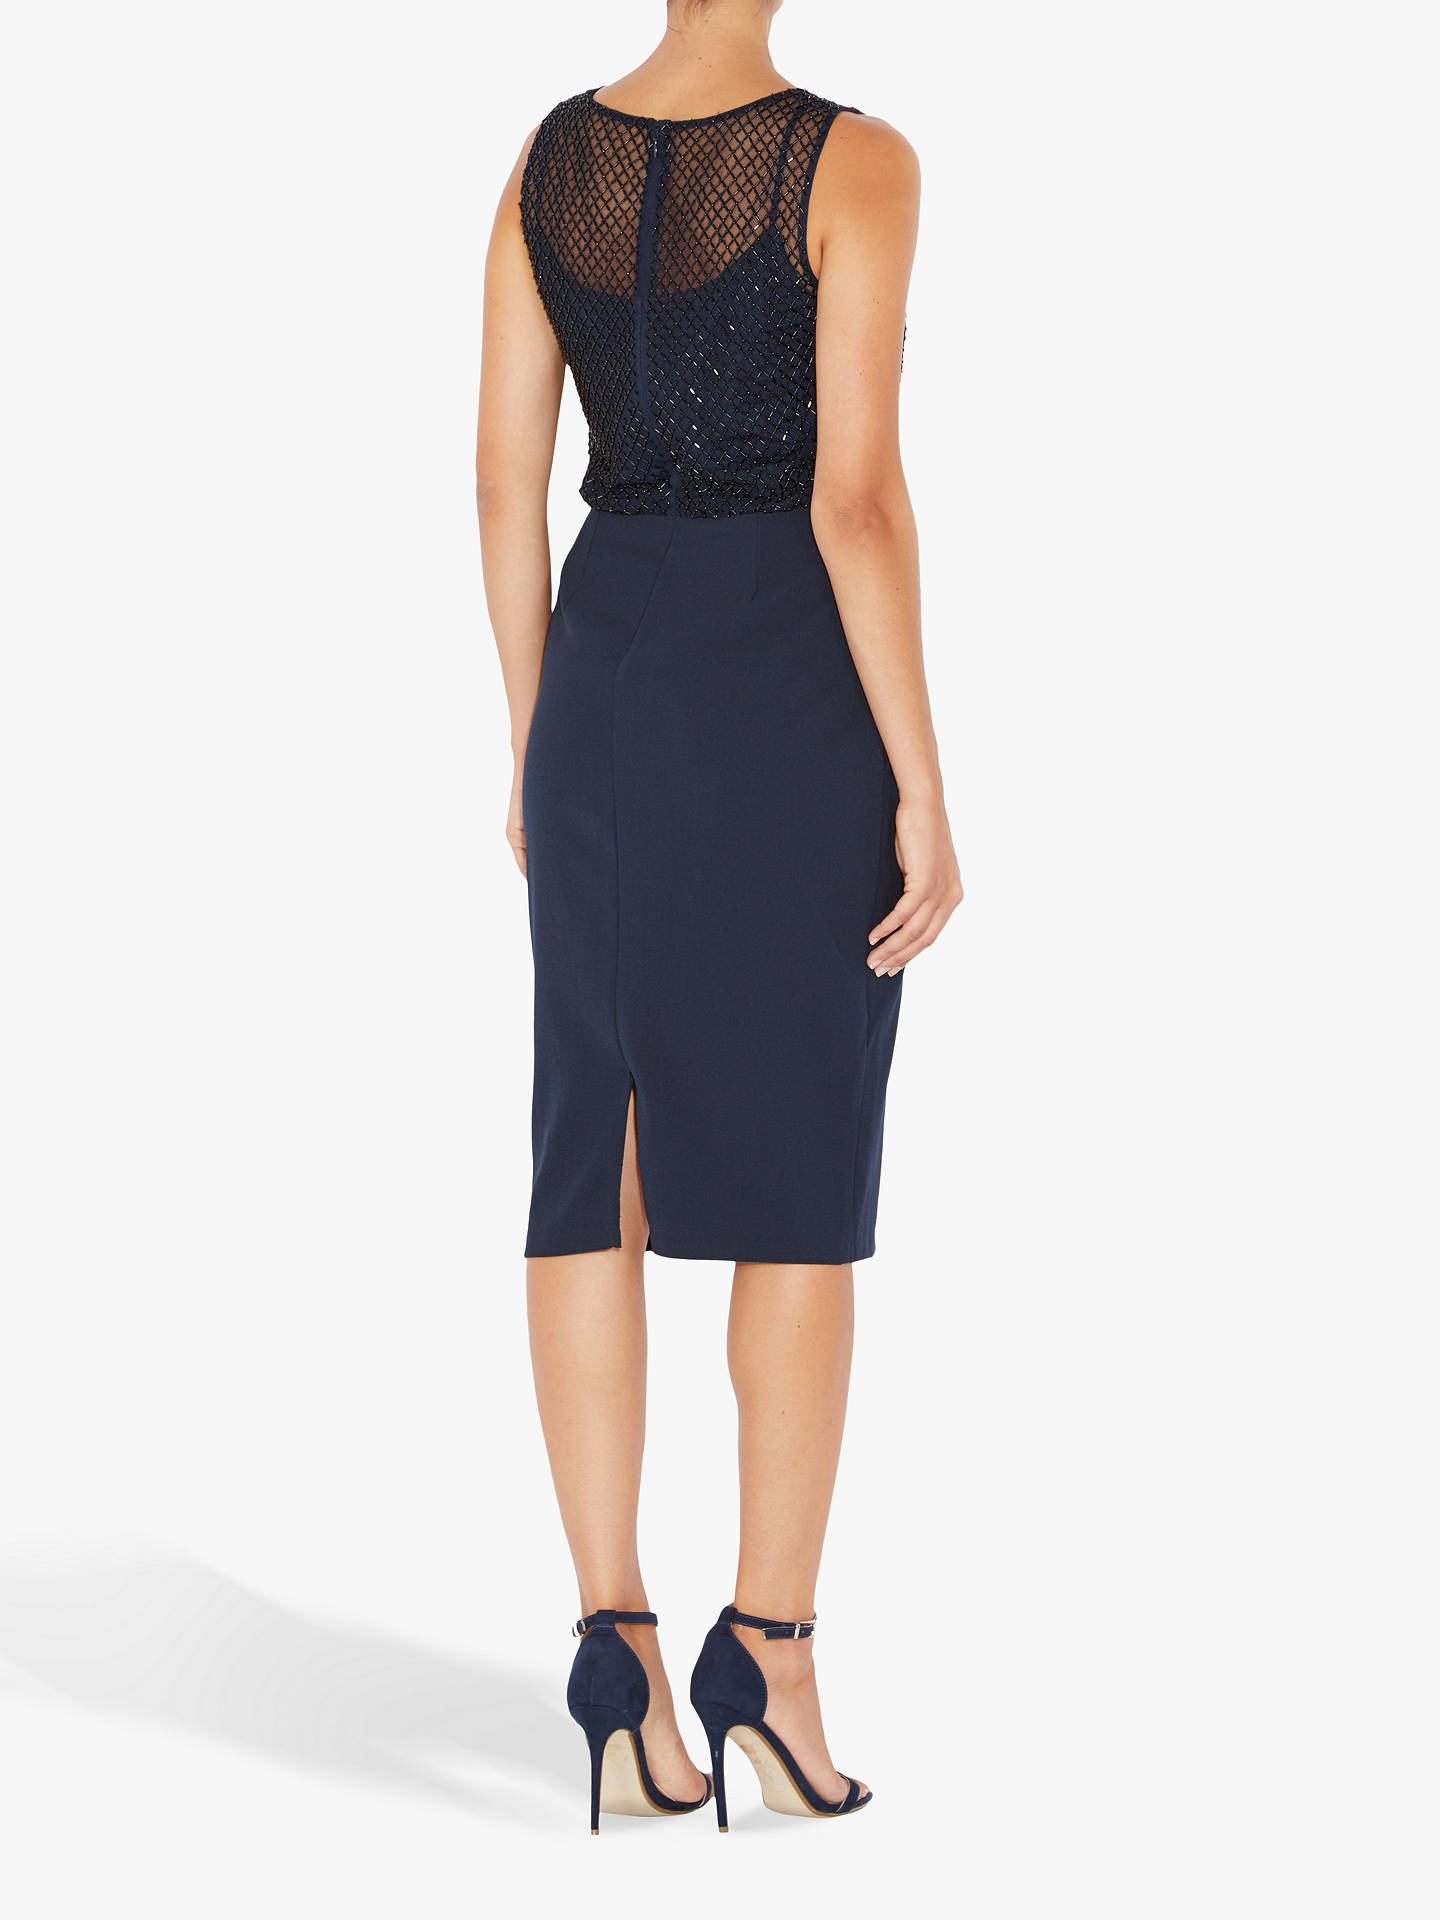 BuyAdrianna Papell Petite Beaded Mesh Dress, Blue, 8 Online at johnlewis.com